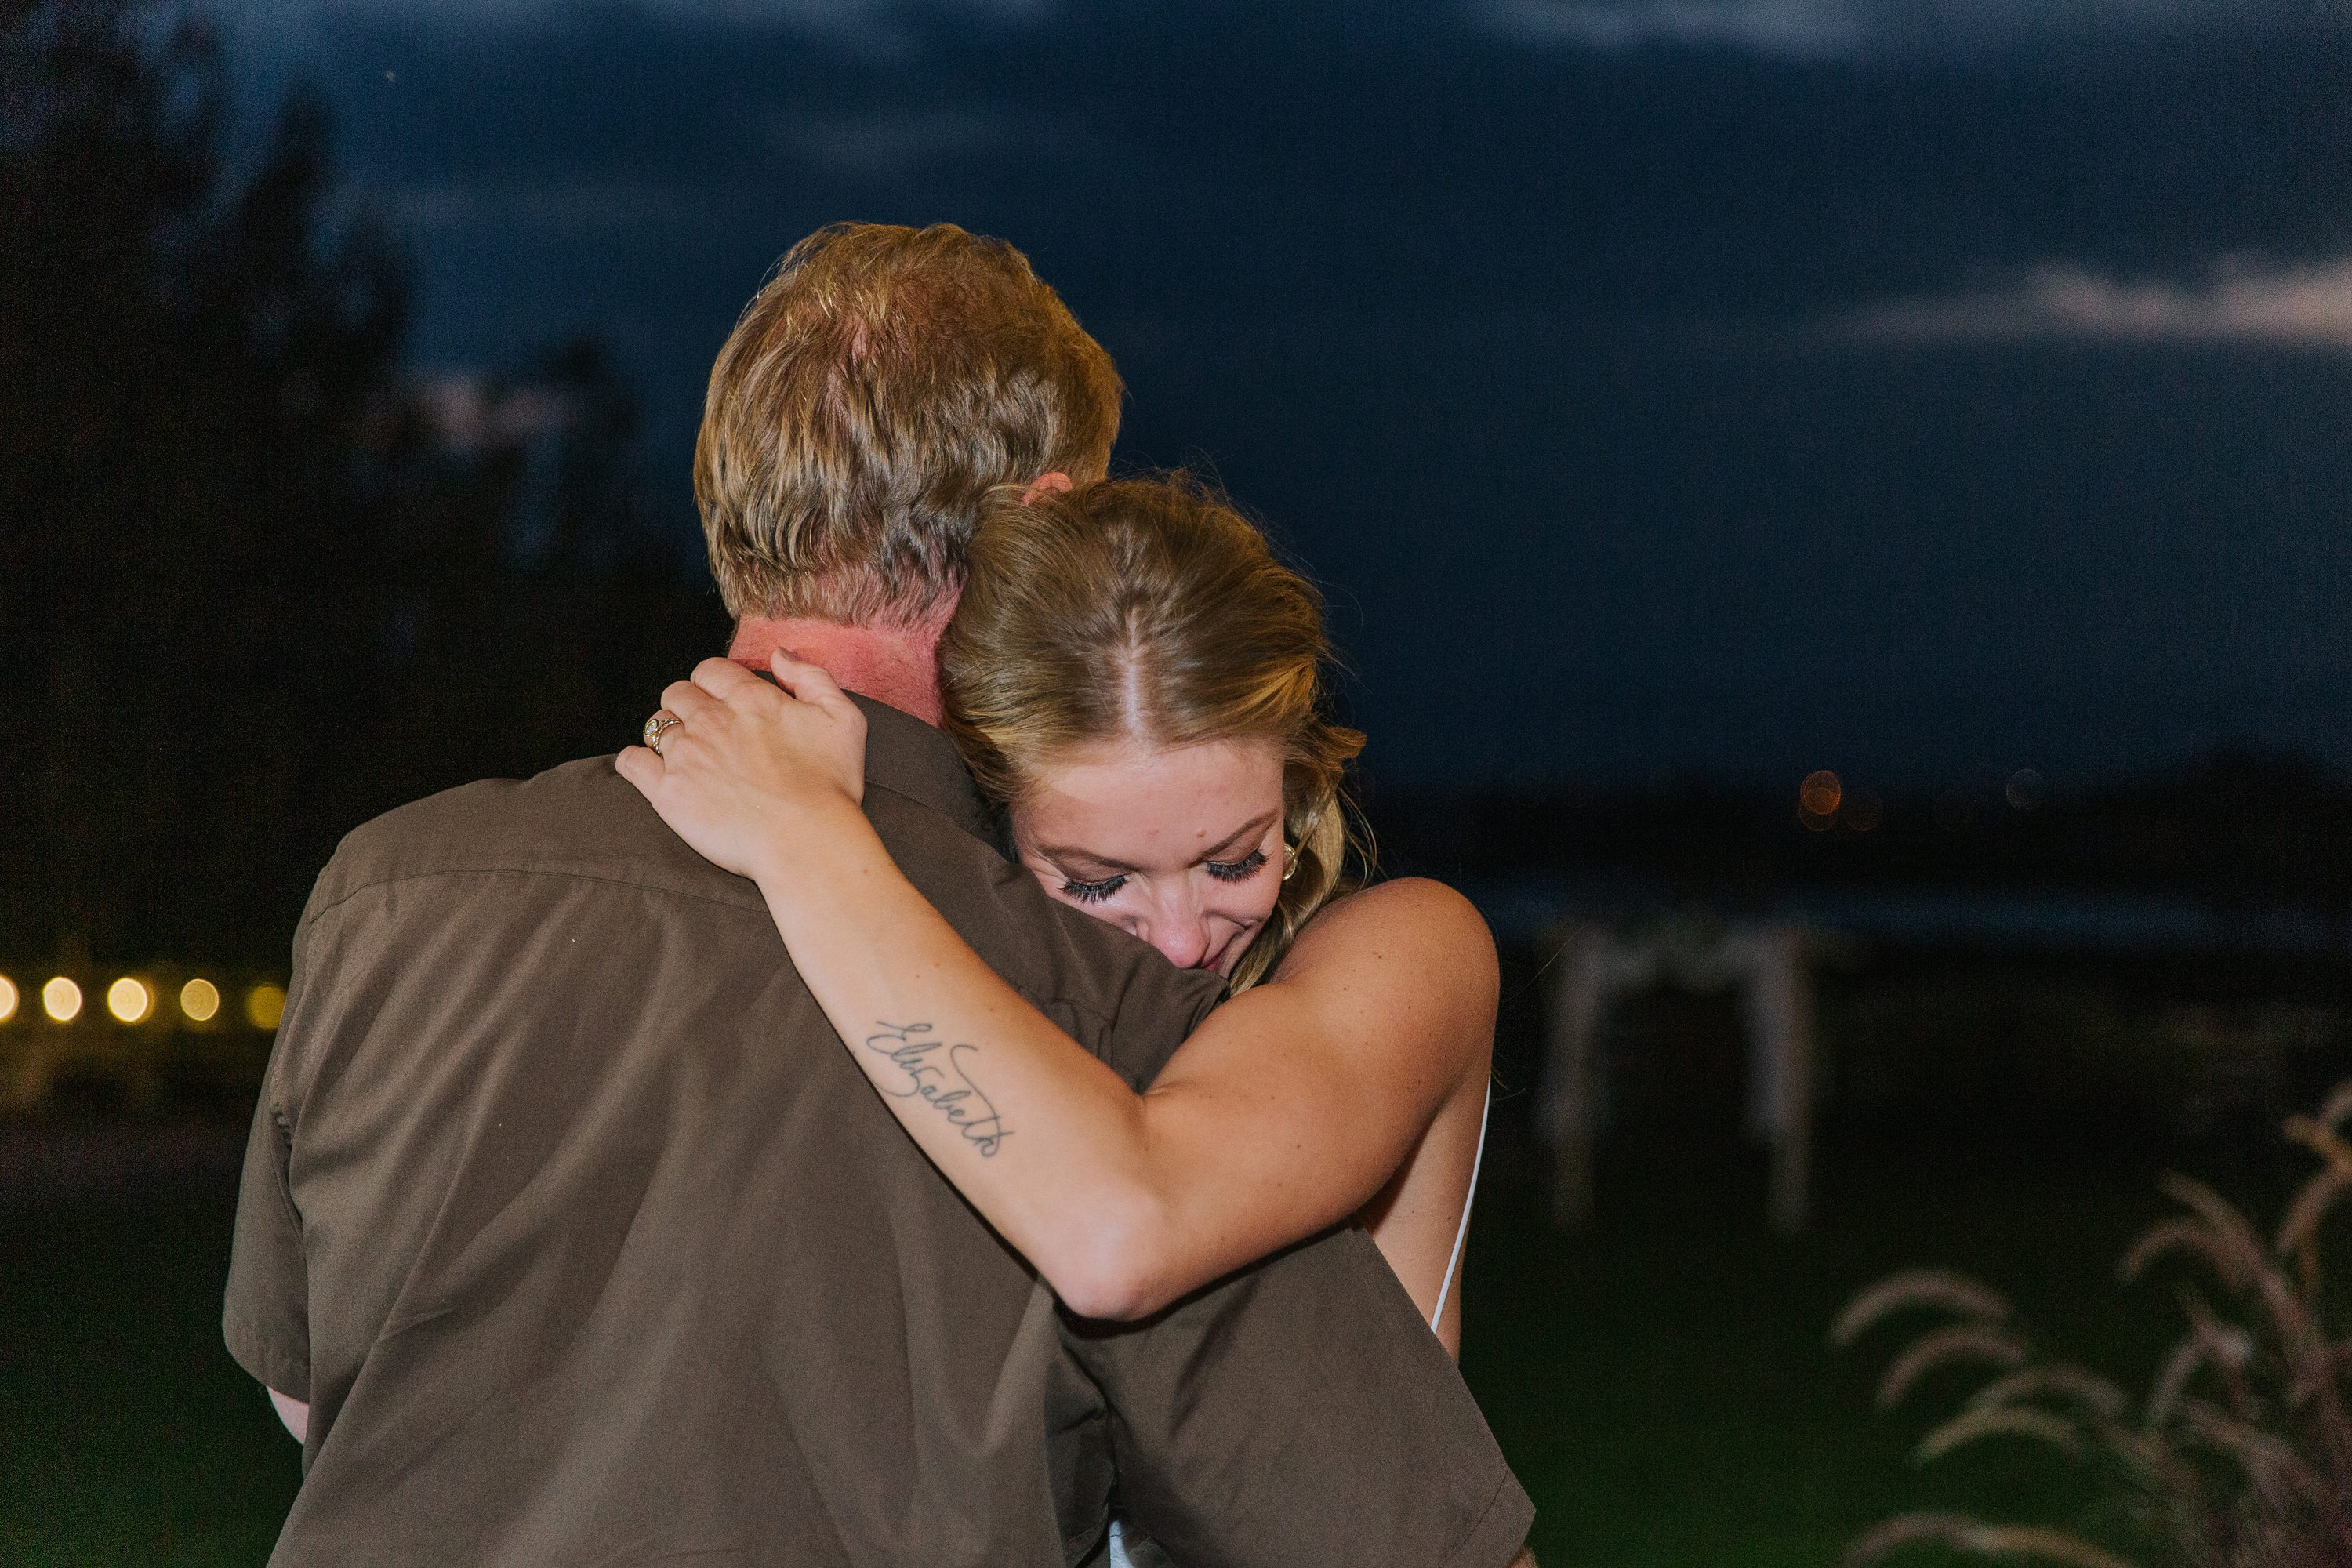 father of the bride,father daughter dance,bride with tattoos